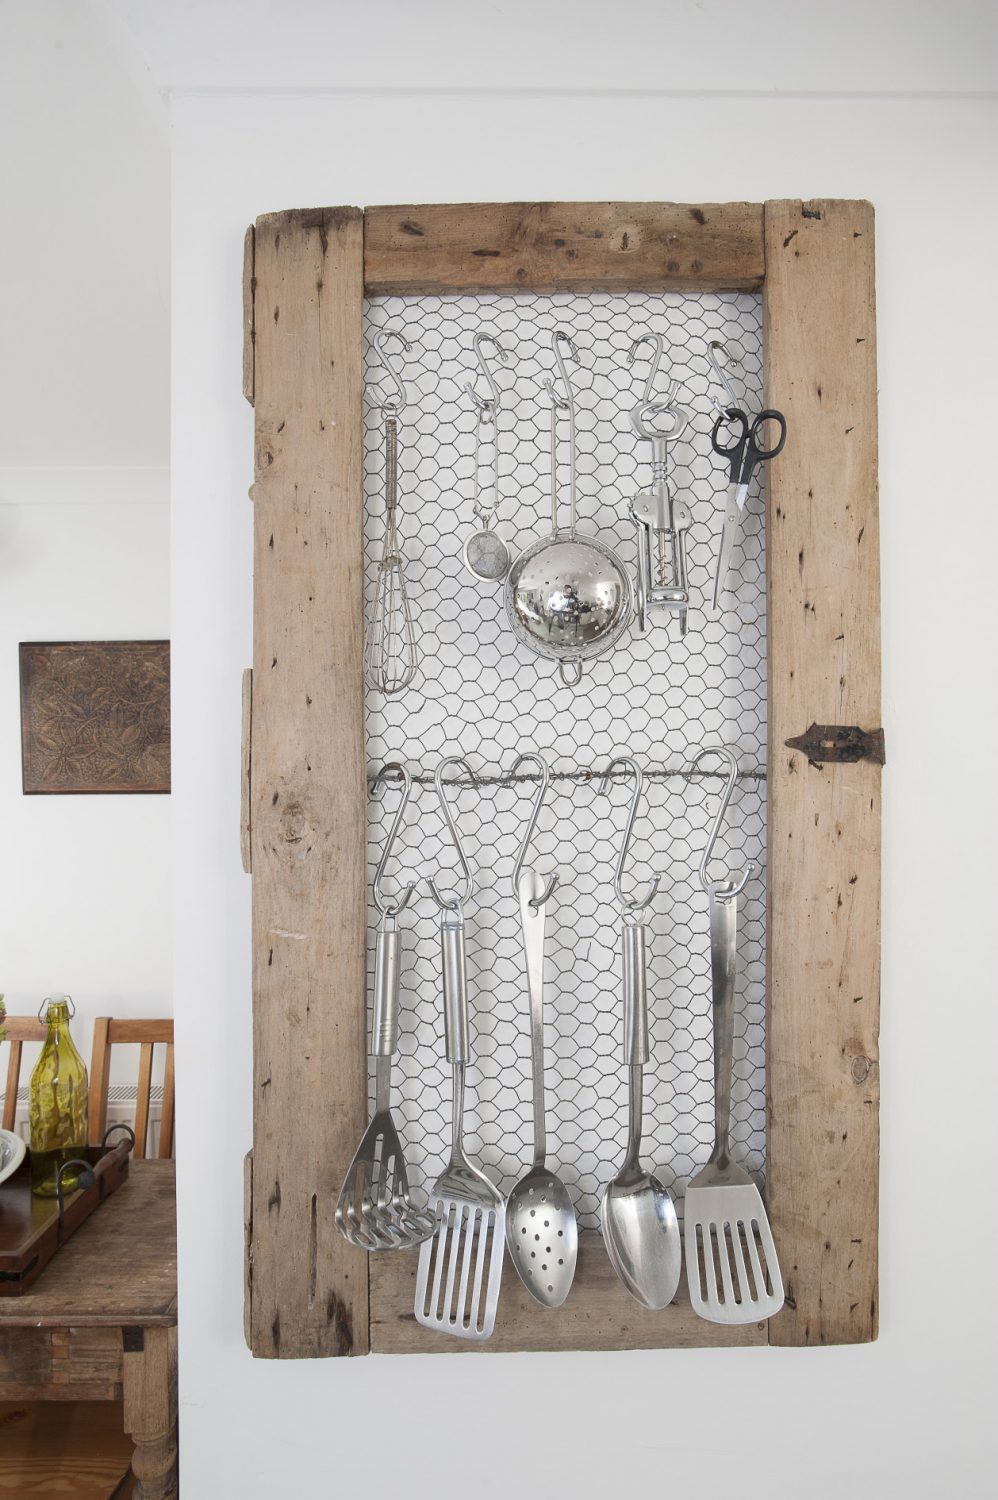 On the wall is a clever French find that has allowed Linda to indulge in her passion of displaying every-day objects: an old pair of cupboard doors backed with chicken wire